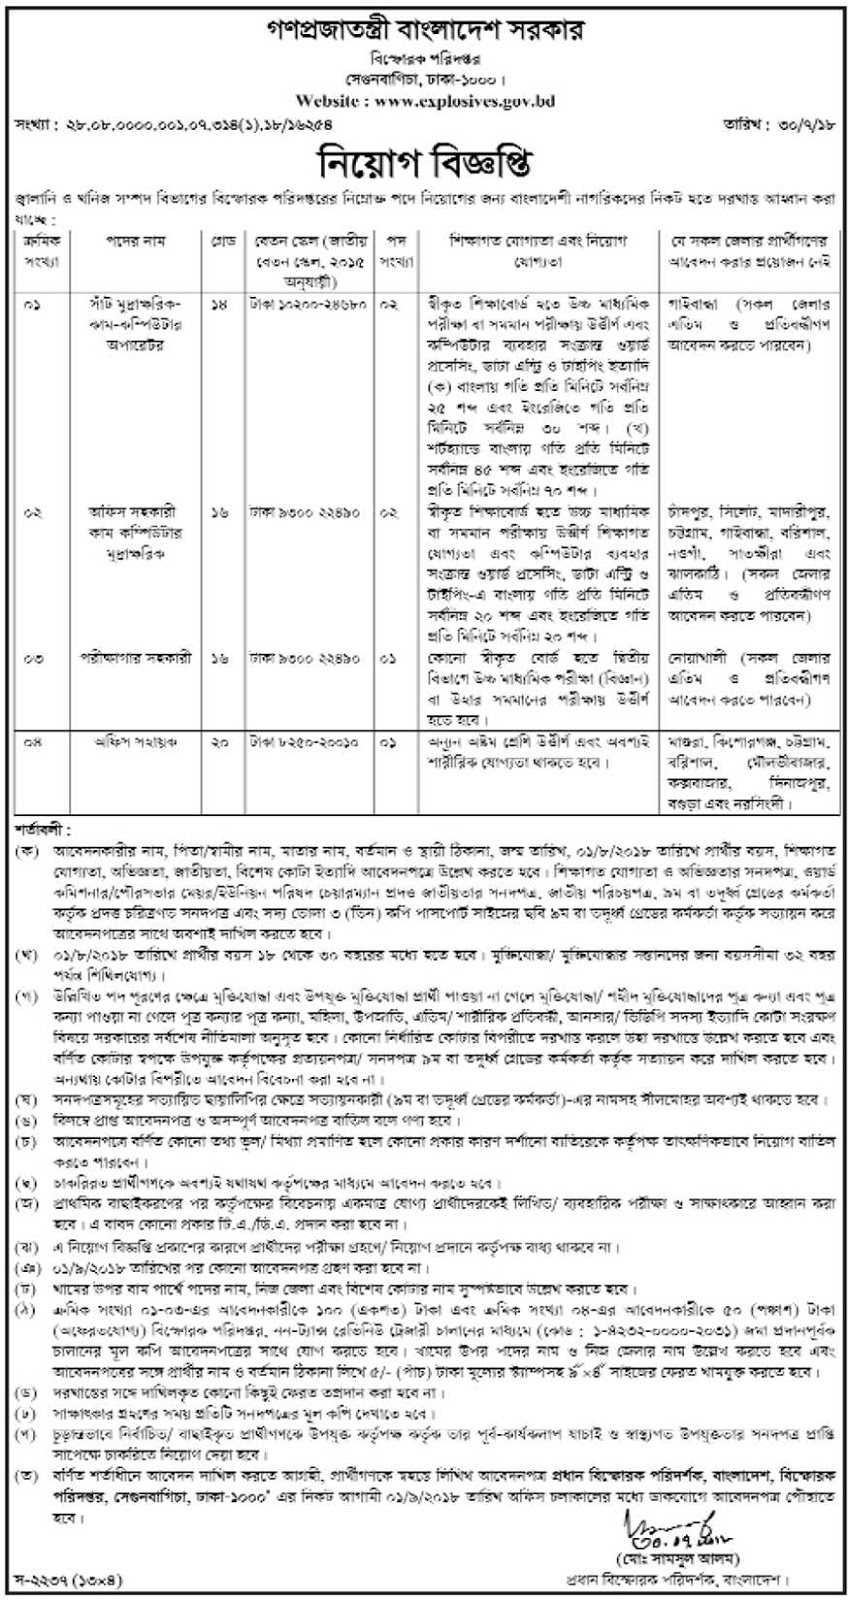 Department of Explosives Job Circular 2018